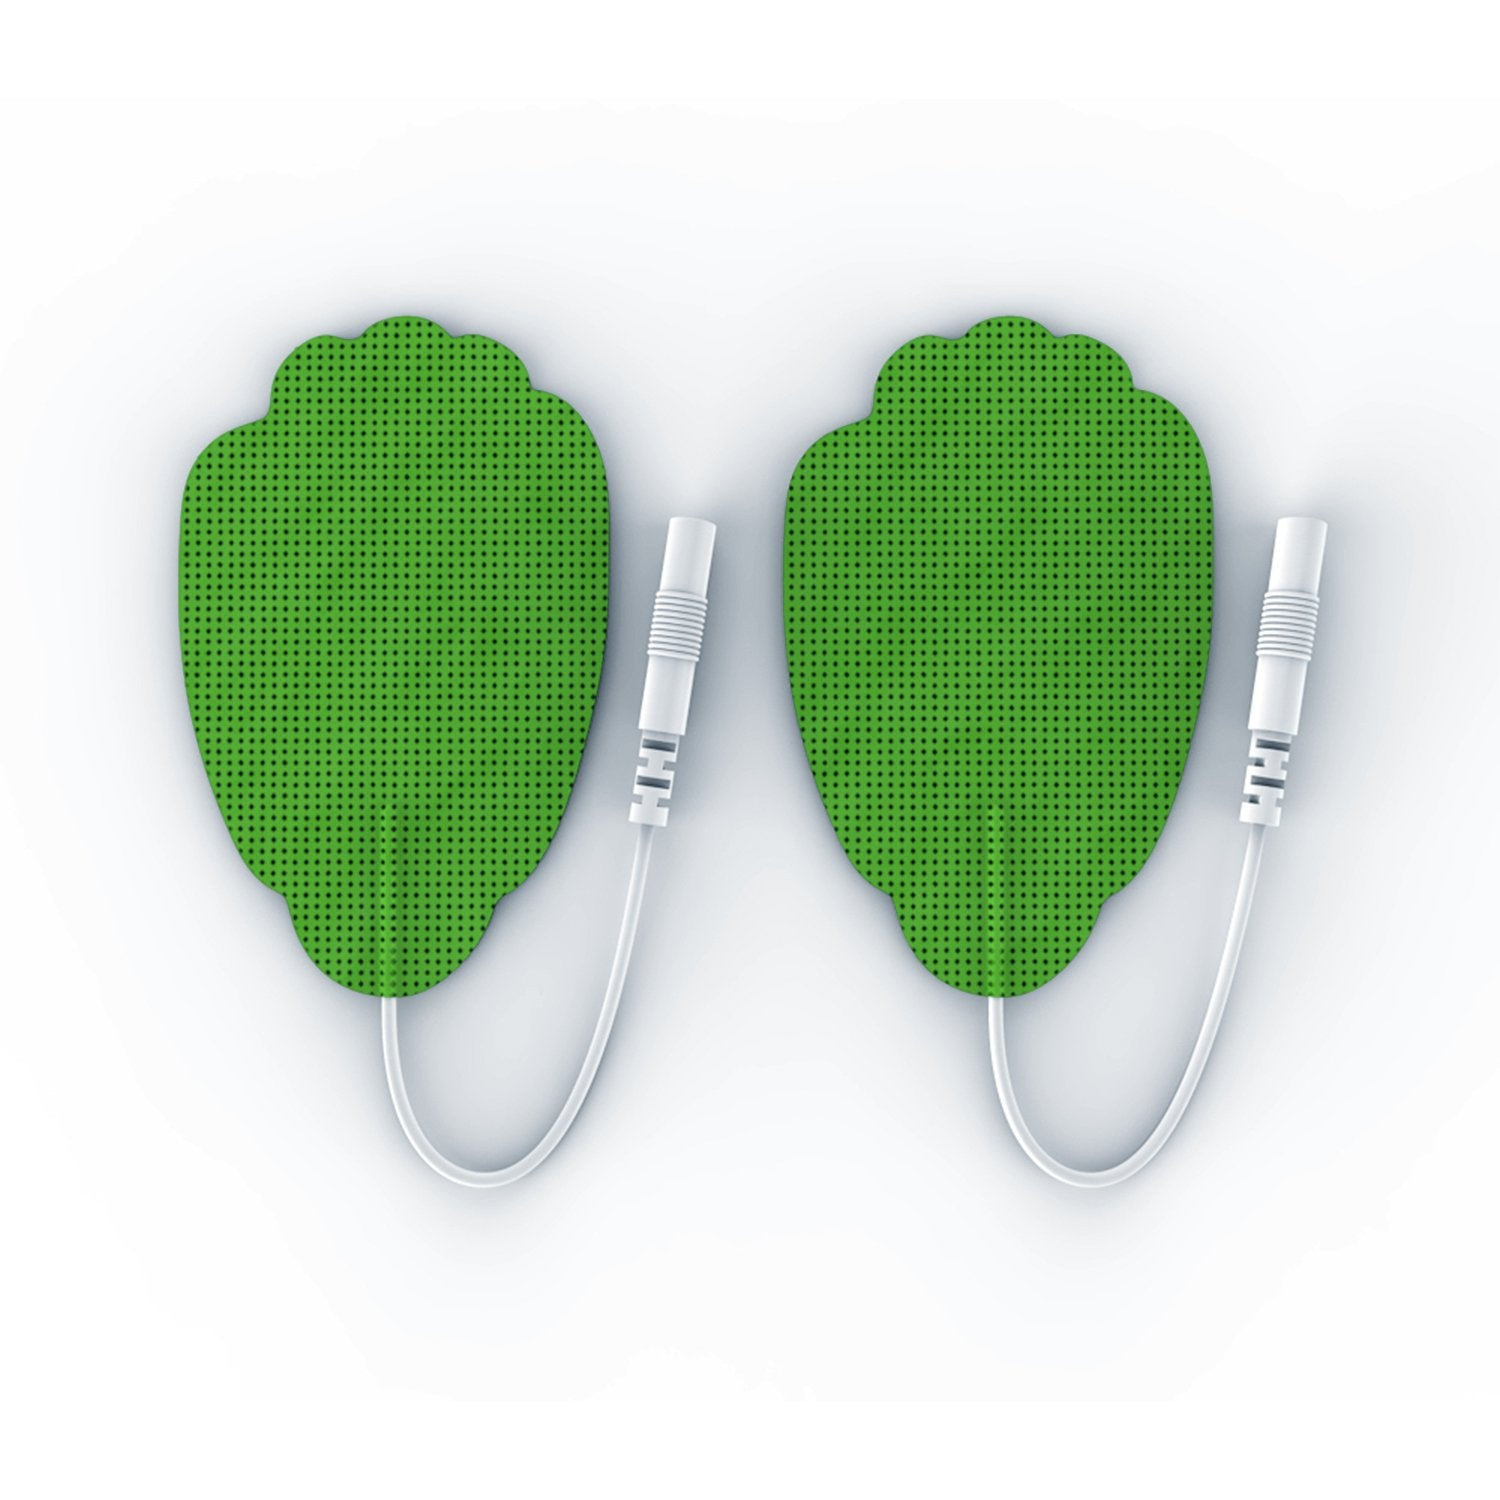 10 Pairs (20 Pcs) Green Pin-Insert Large Hand-Shaped Pads - HealthmateForever